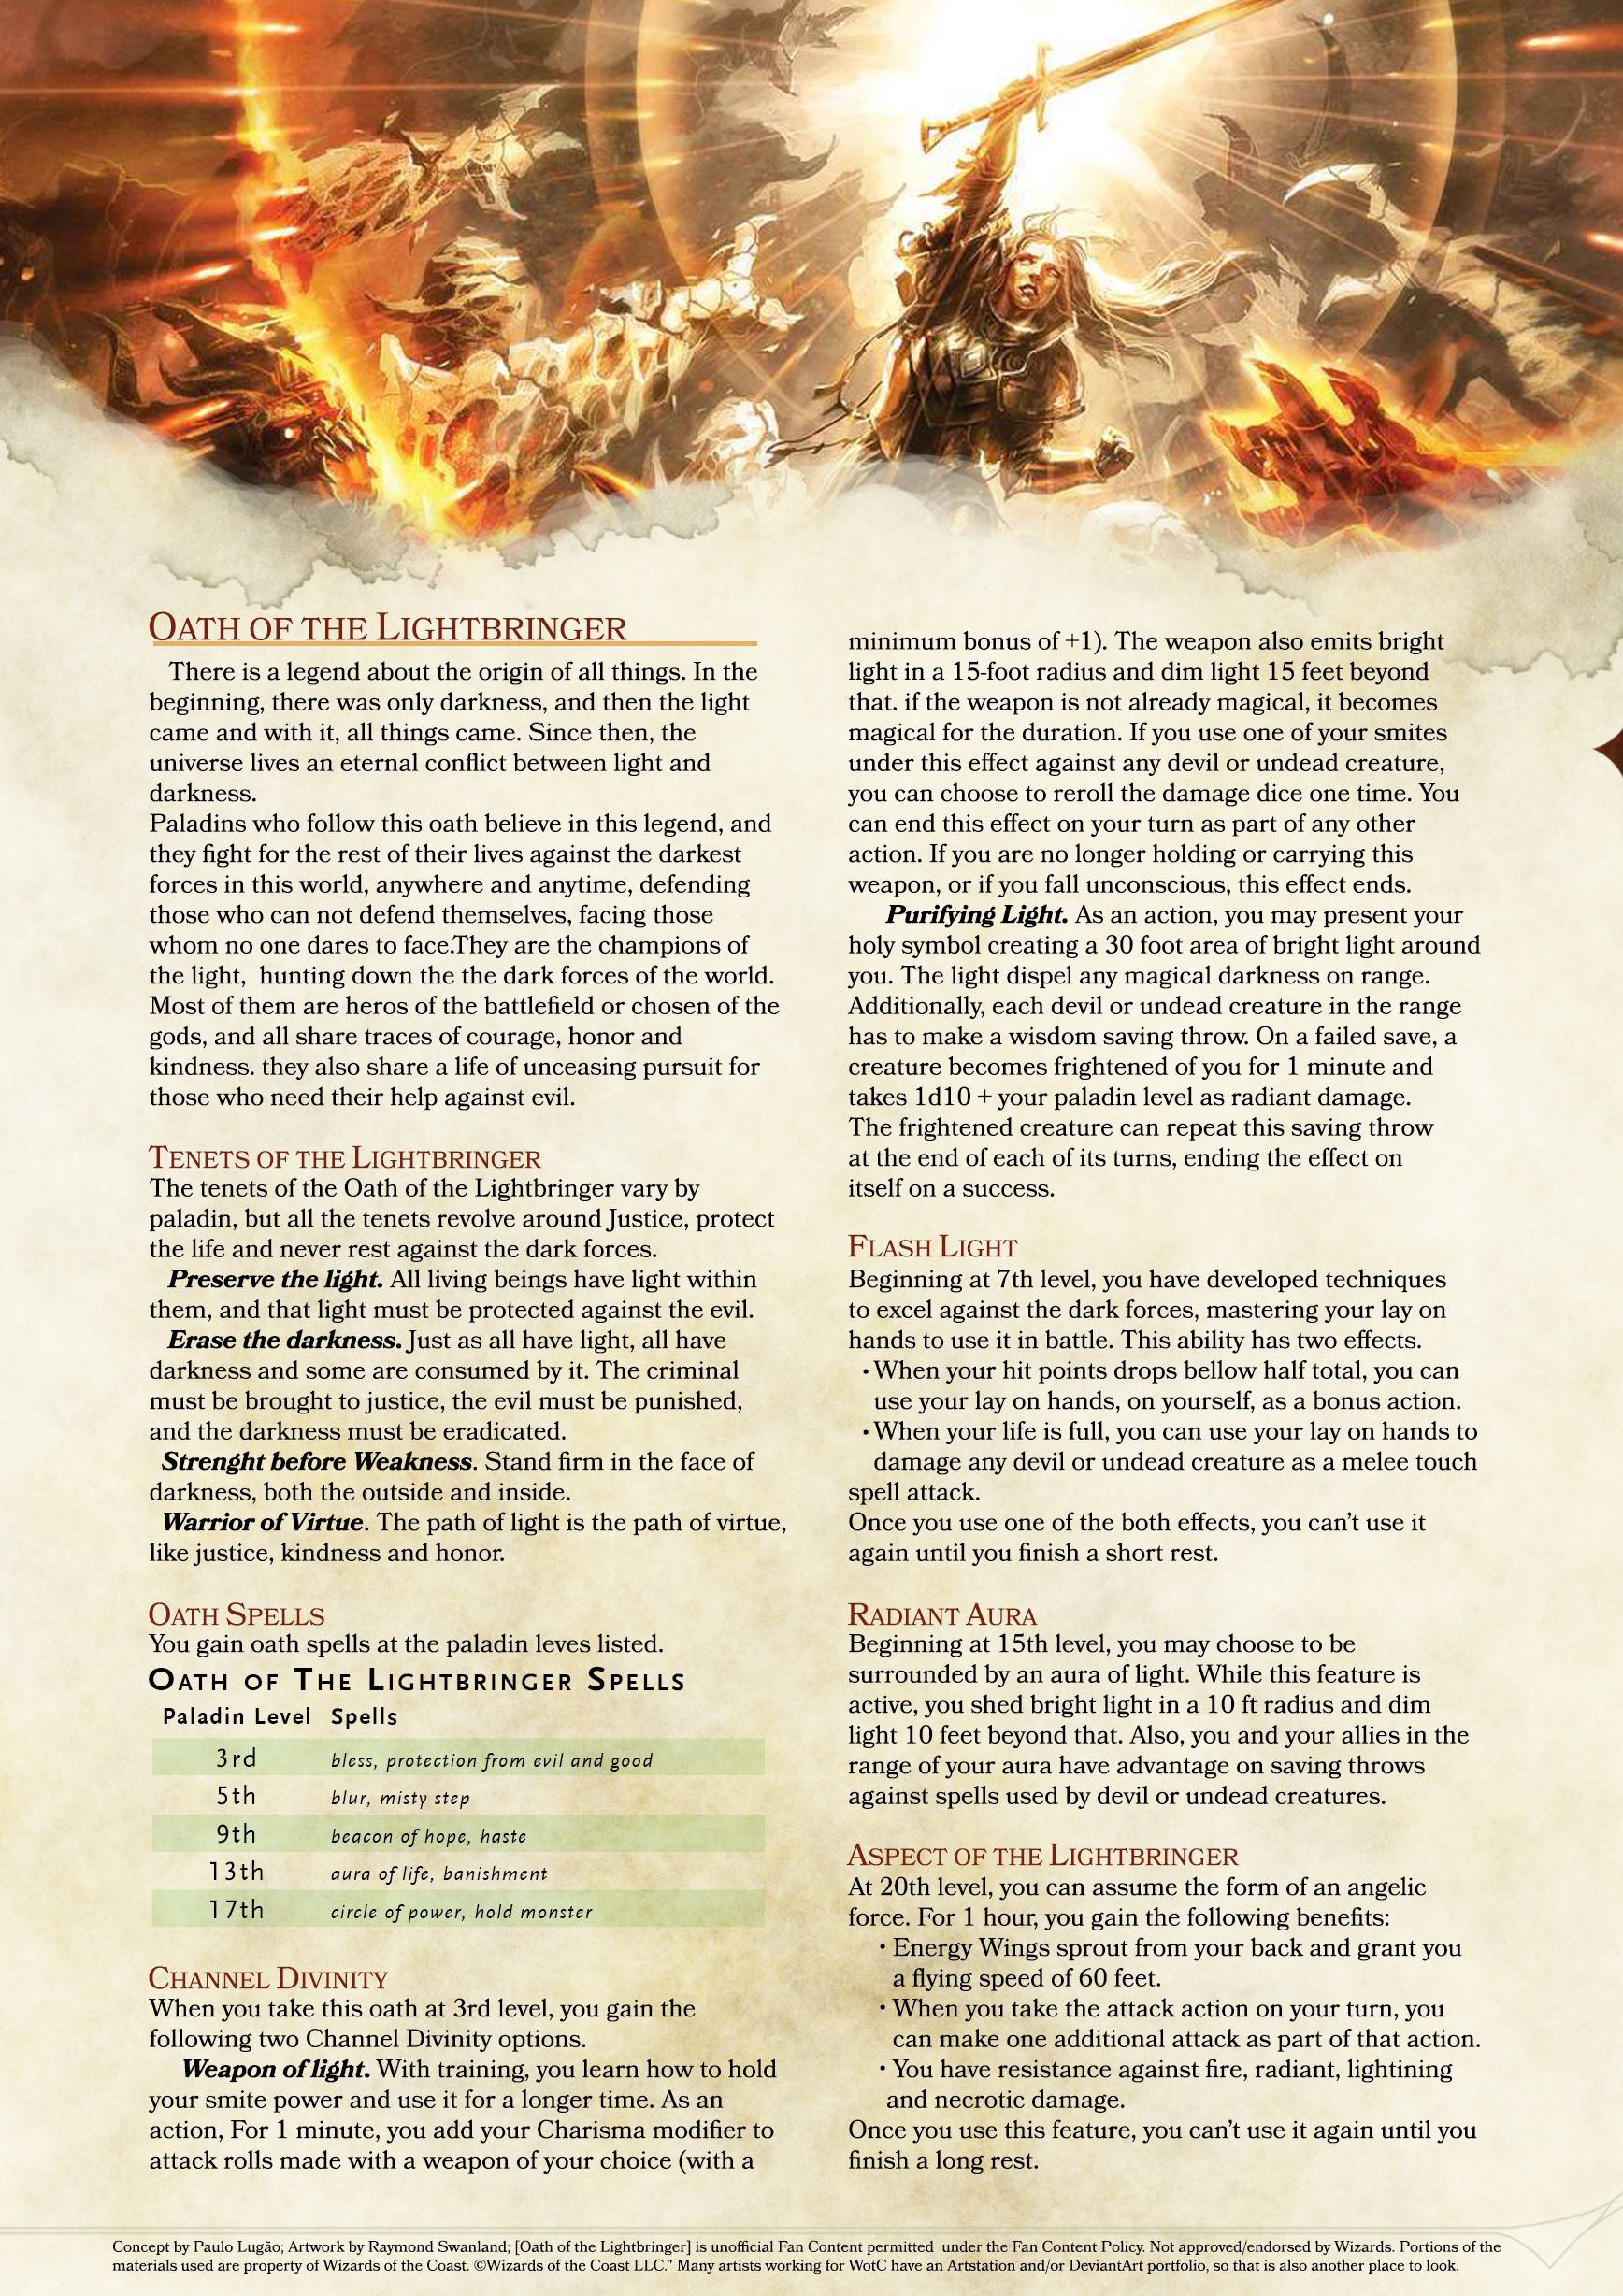 Oath of the Lightbringer - DnD 5e - homebrew   Dnd paladin, Dnd 5e homebrew, Dungeons and ...